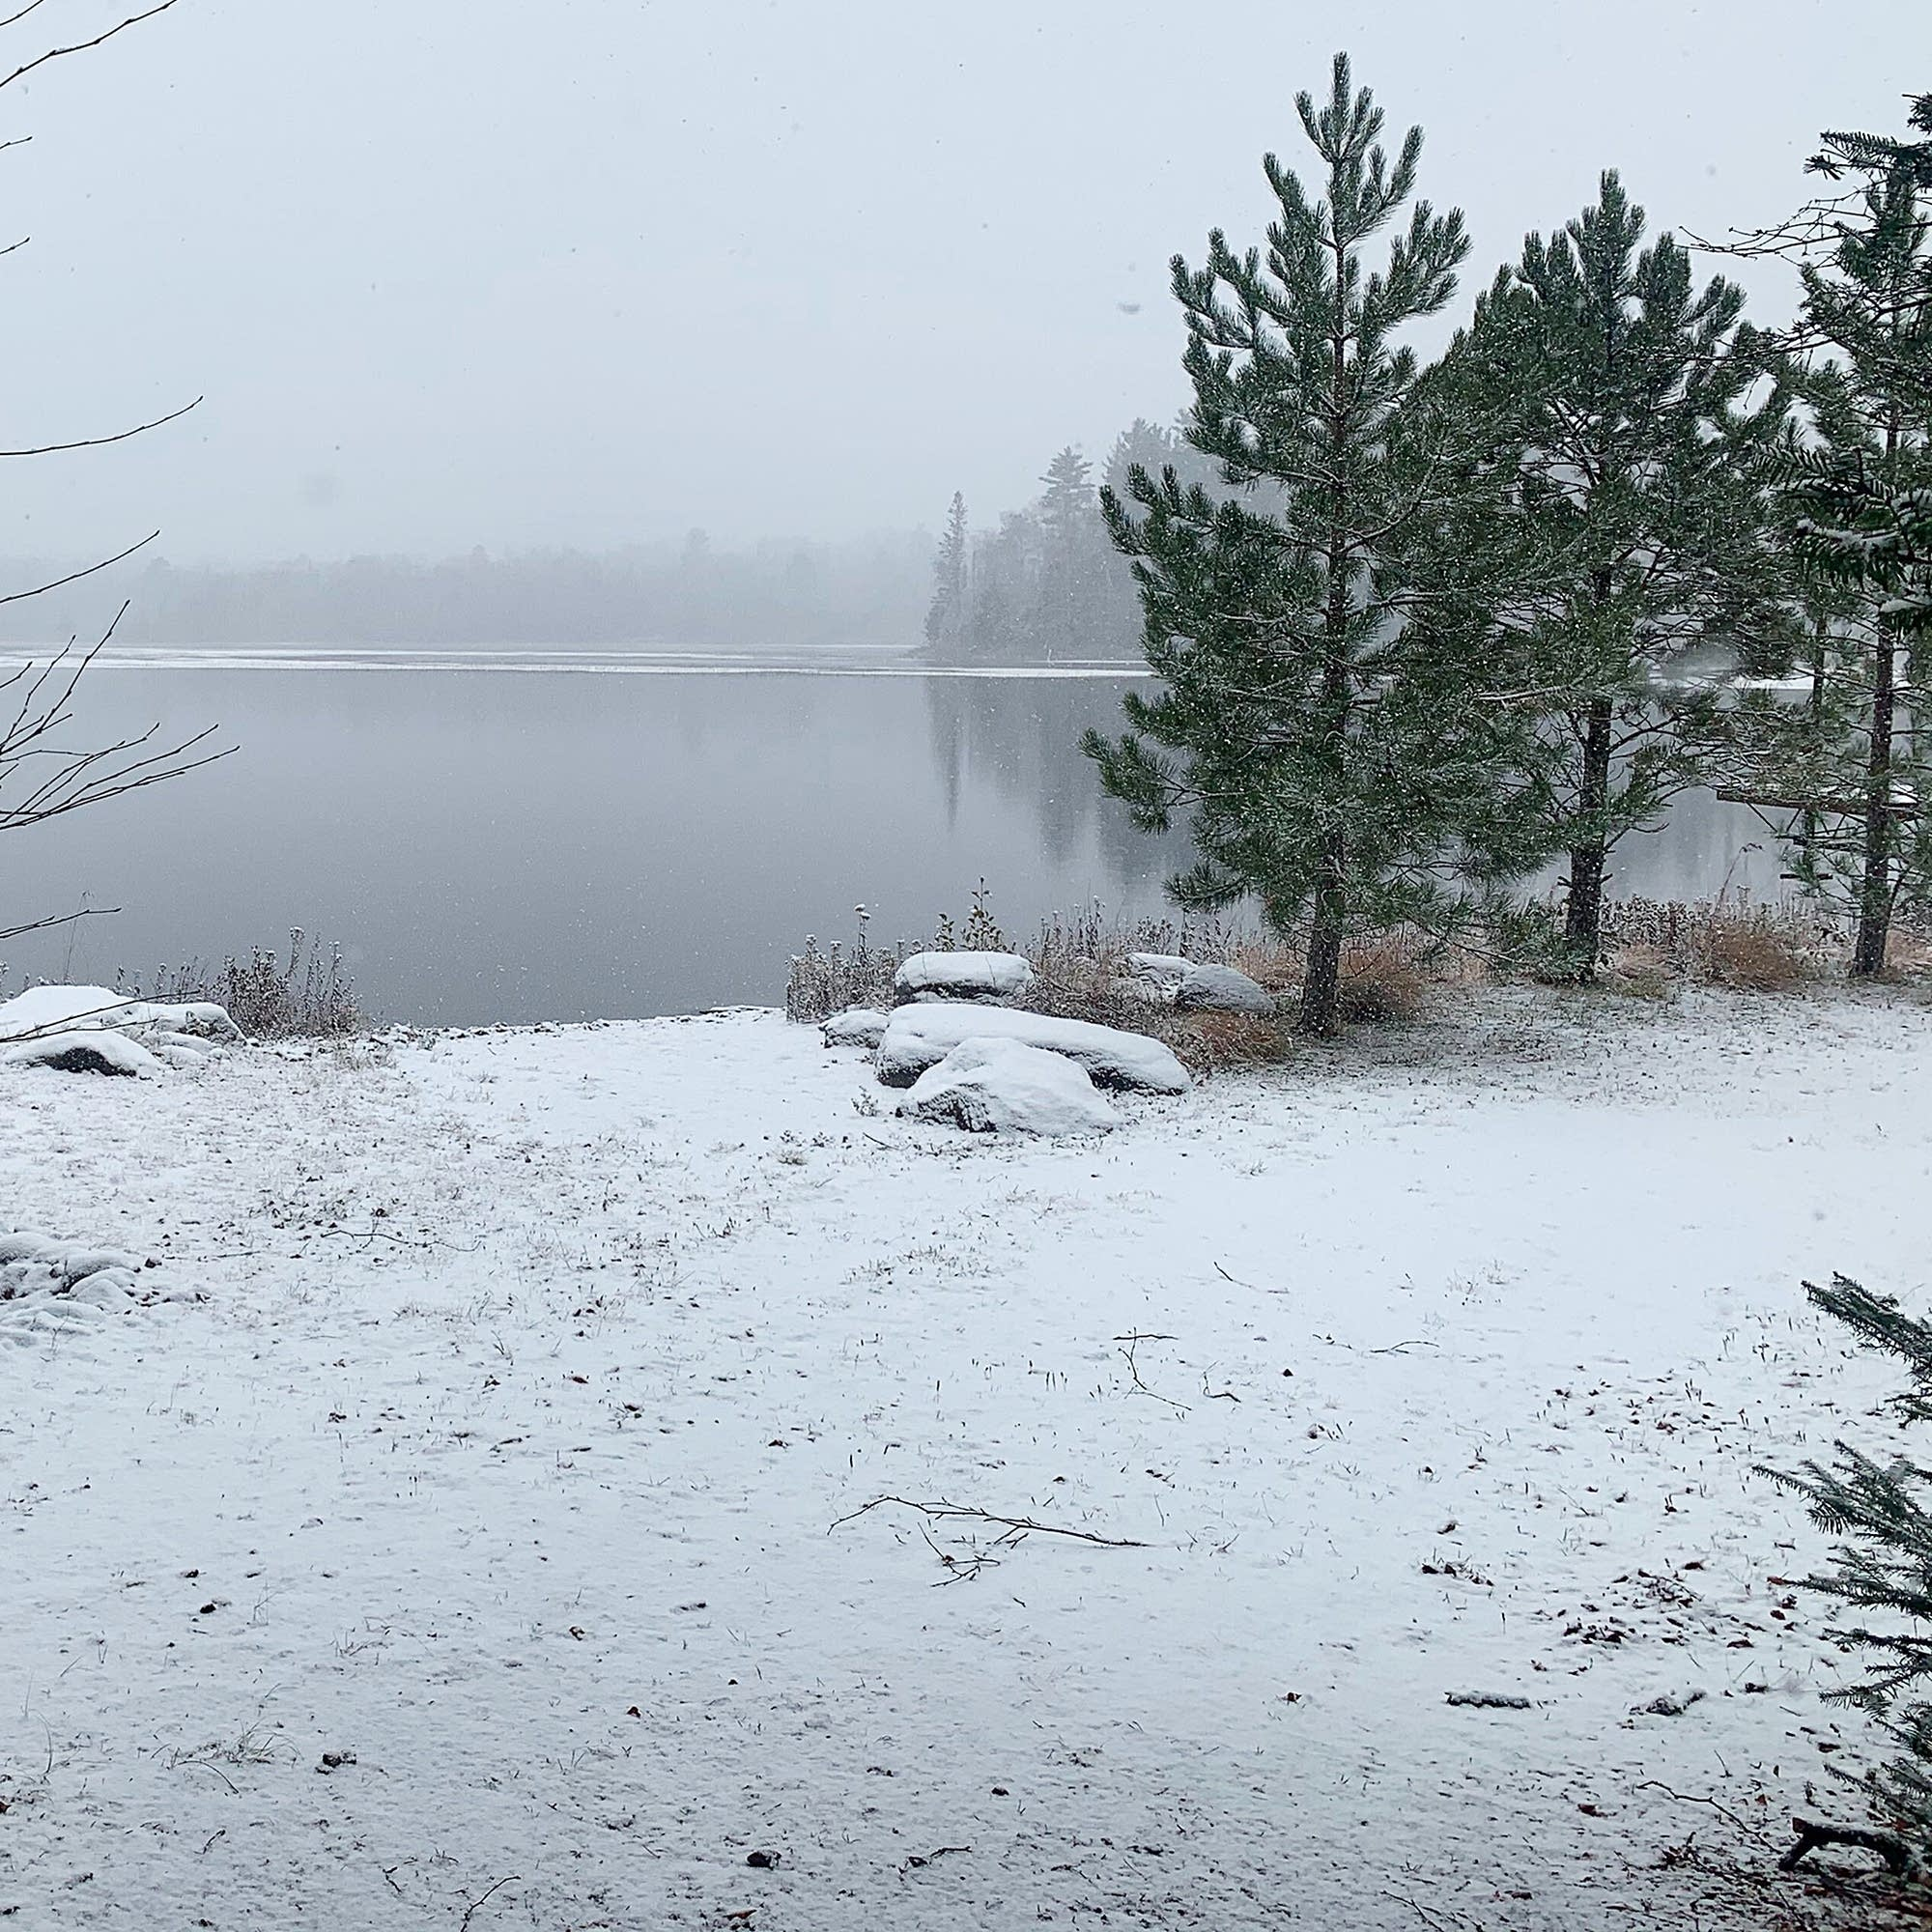 Snow covers the ground and tree branches in front of a body of water.